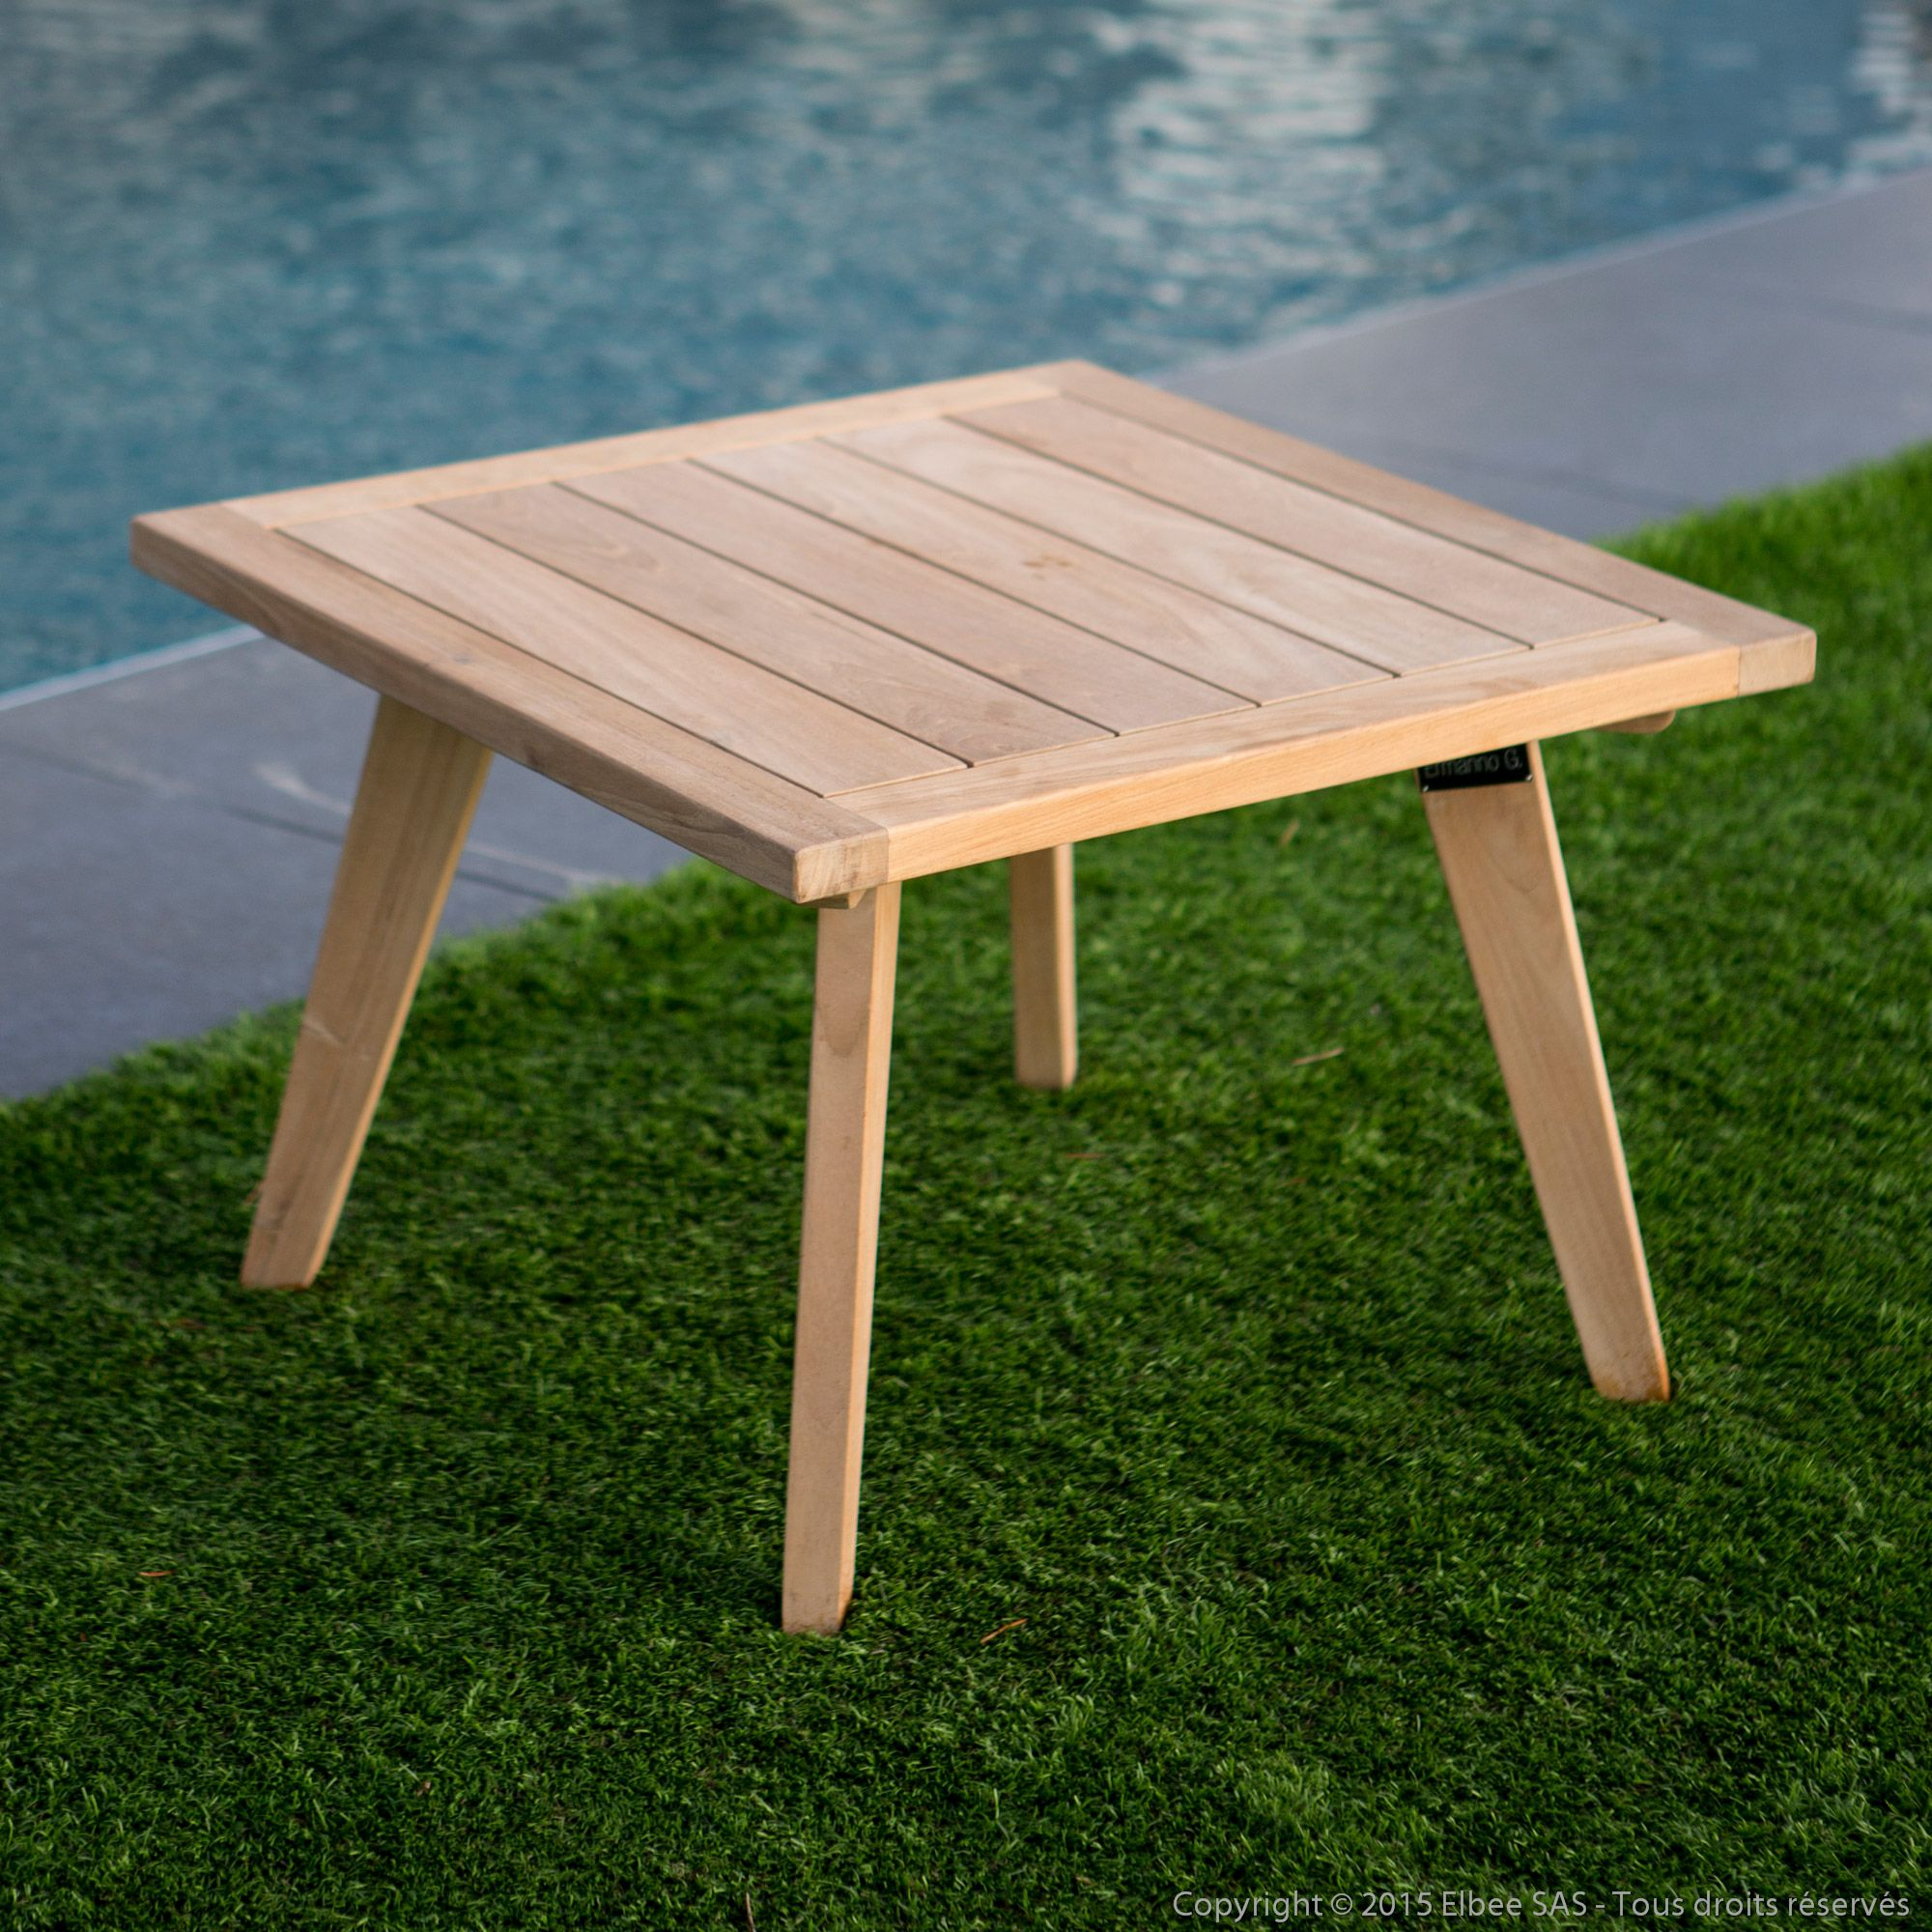 Table Basse Jardin Teck Table Basse De Jardin En Teck Brut 60x60cm Ethnika Mygarden